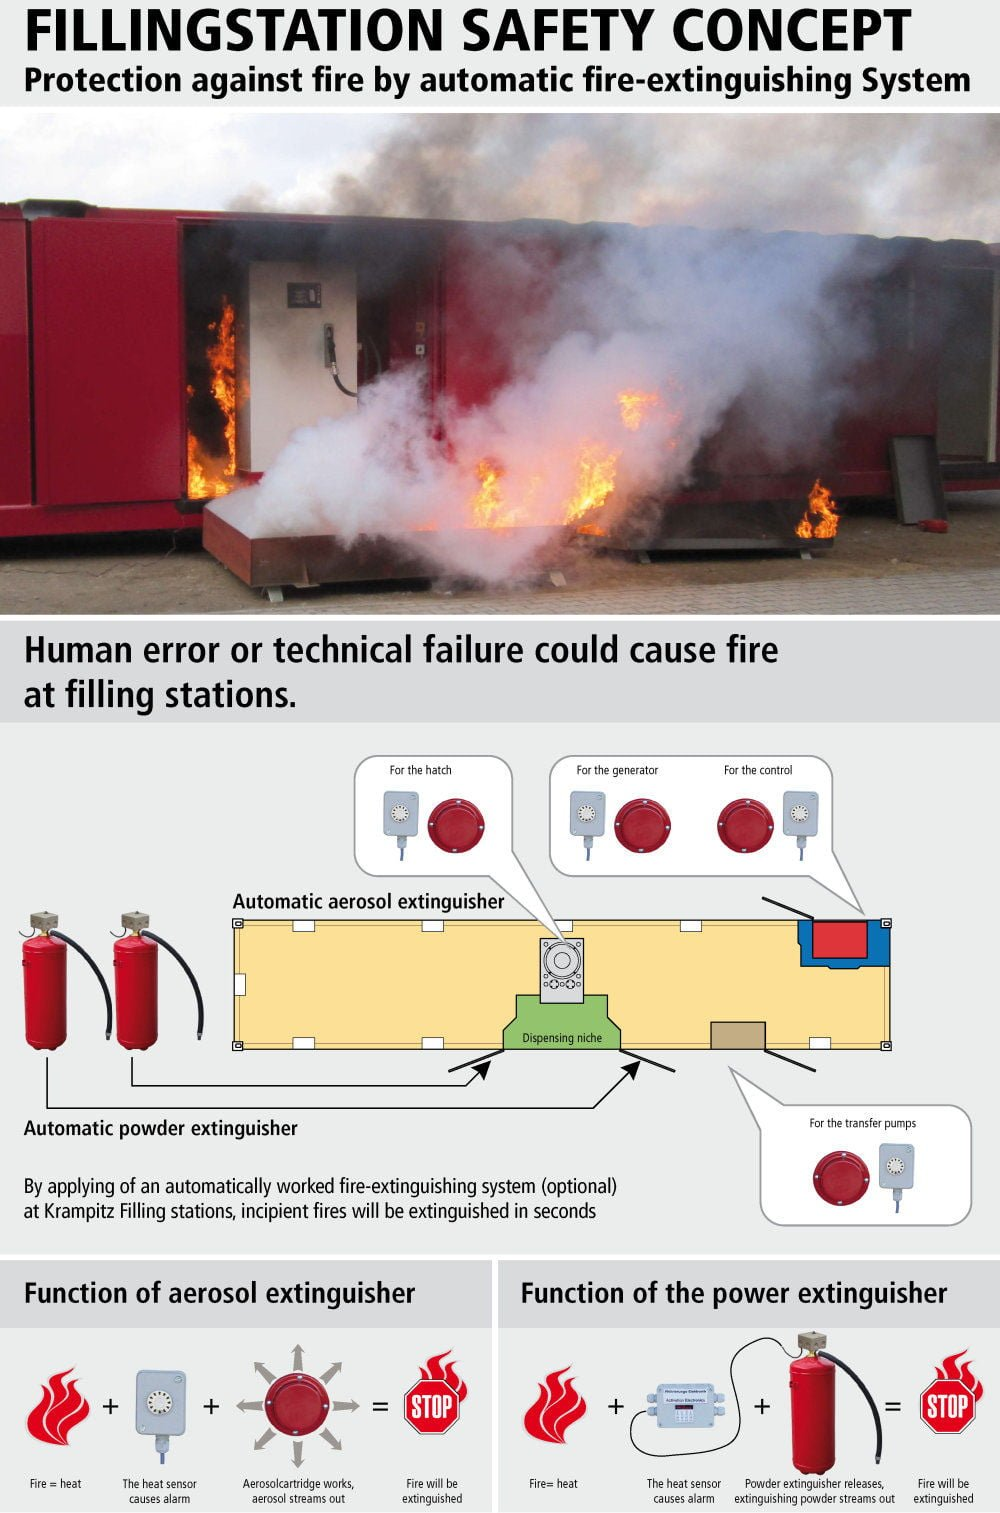 https://www.krampitz.de/wp-content/uploads/2015/11/Fillingstation-Safety-Concept-05.jpg